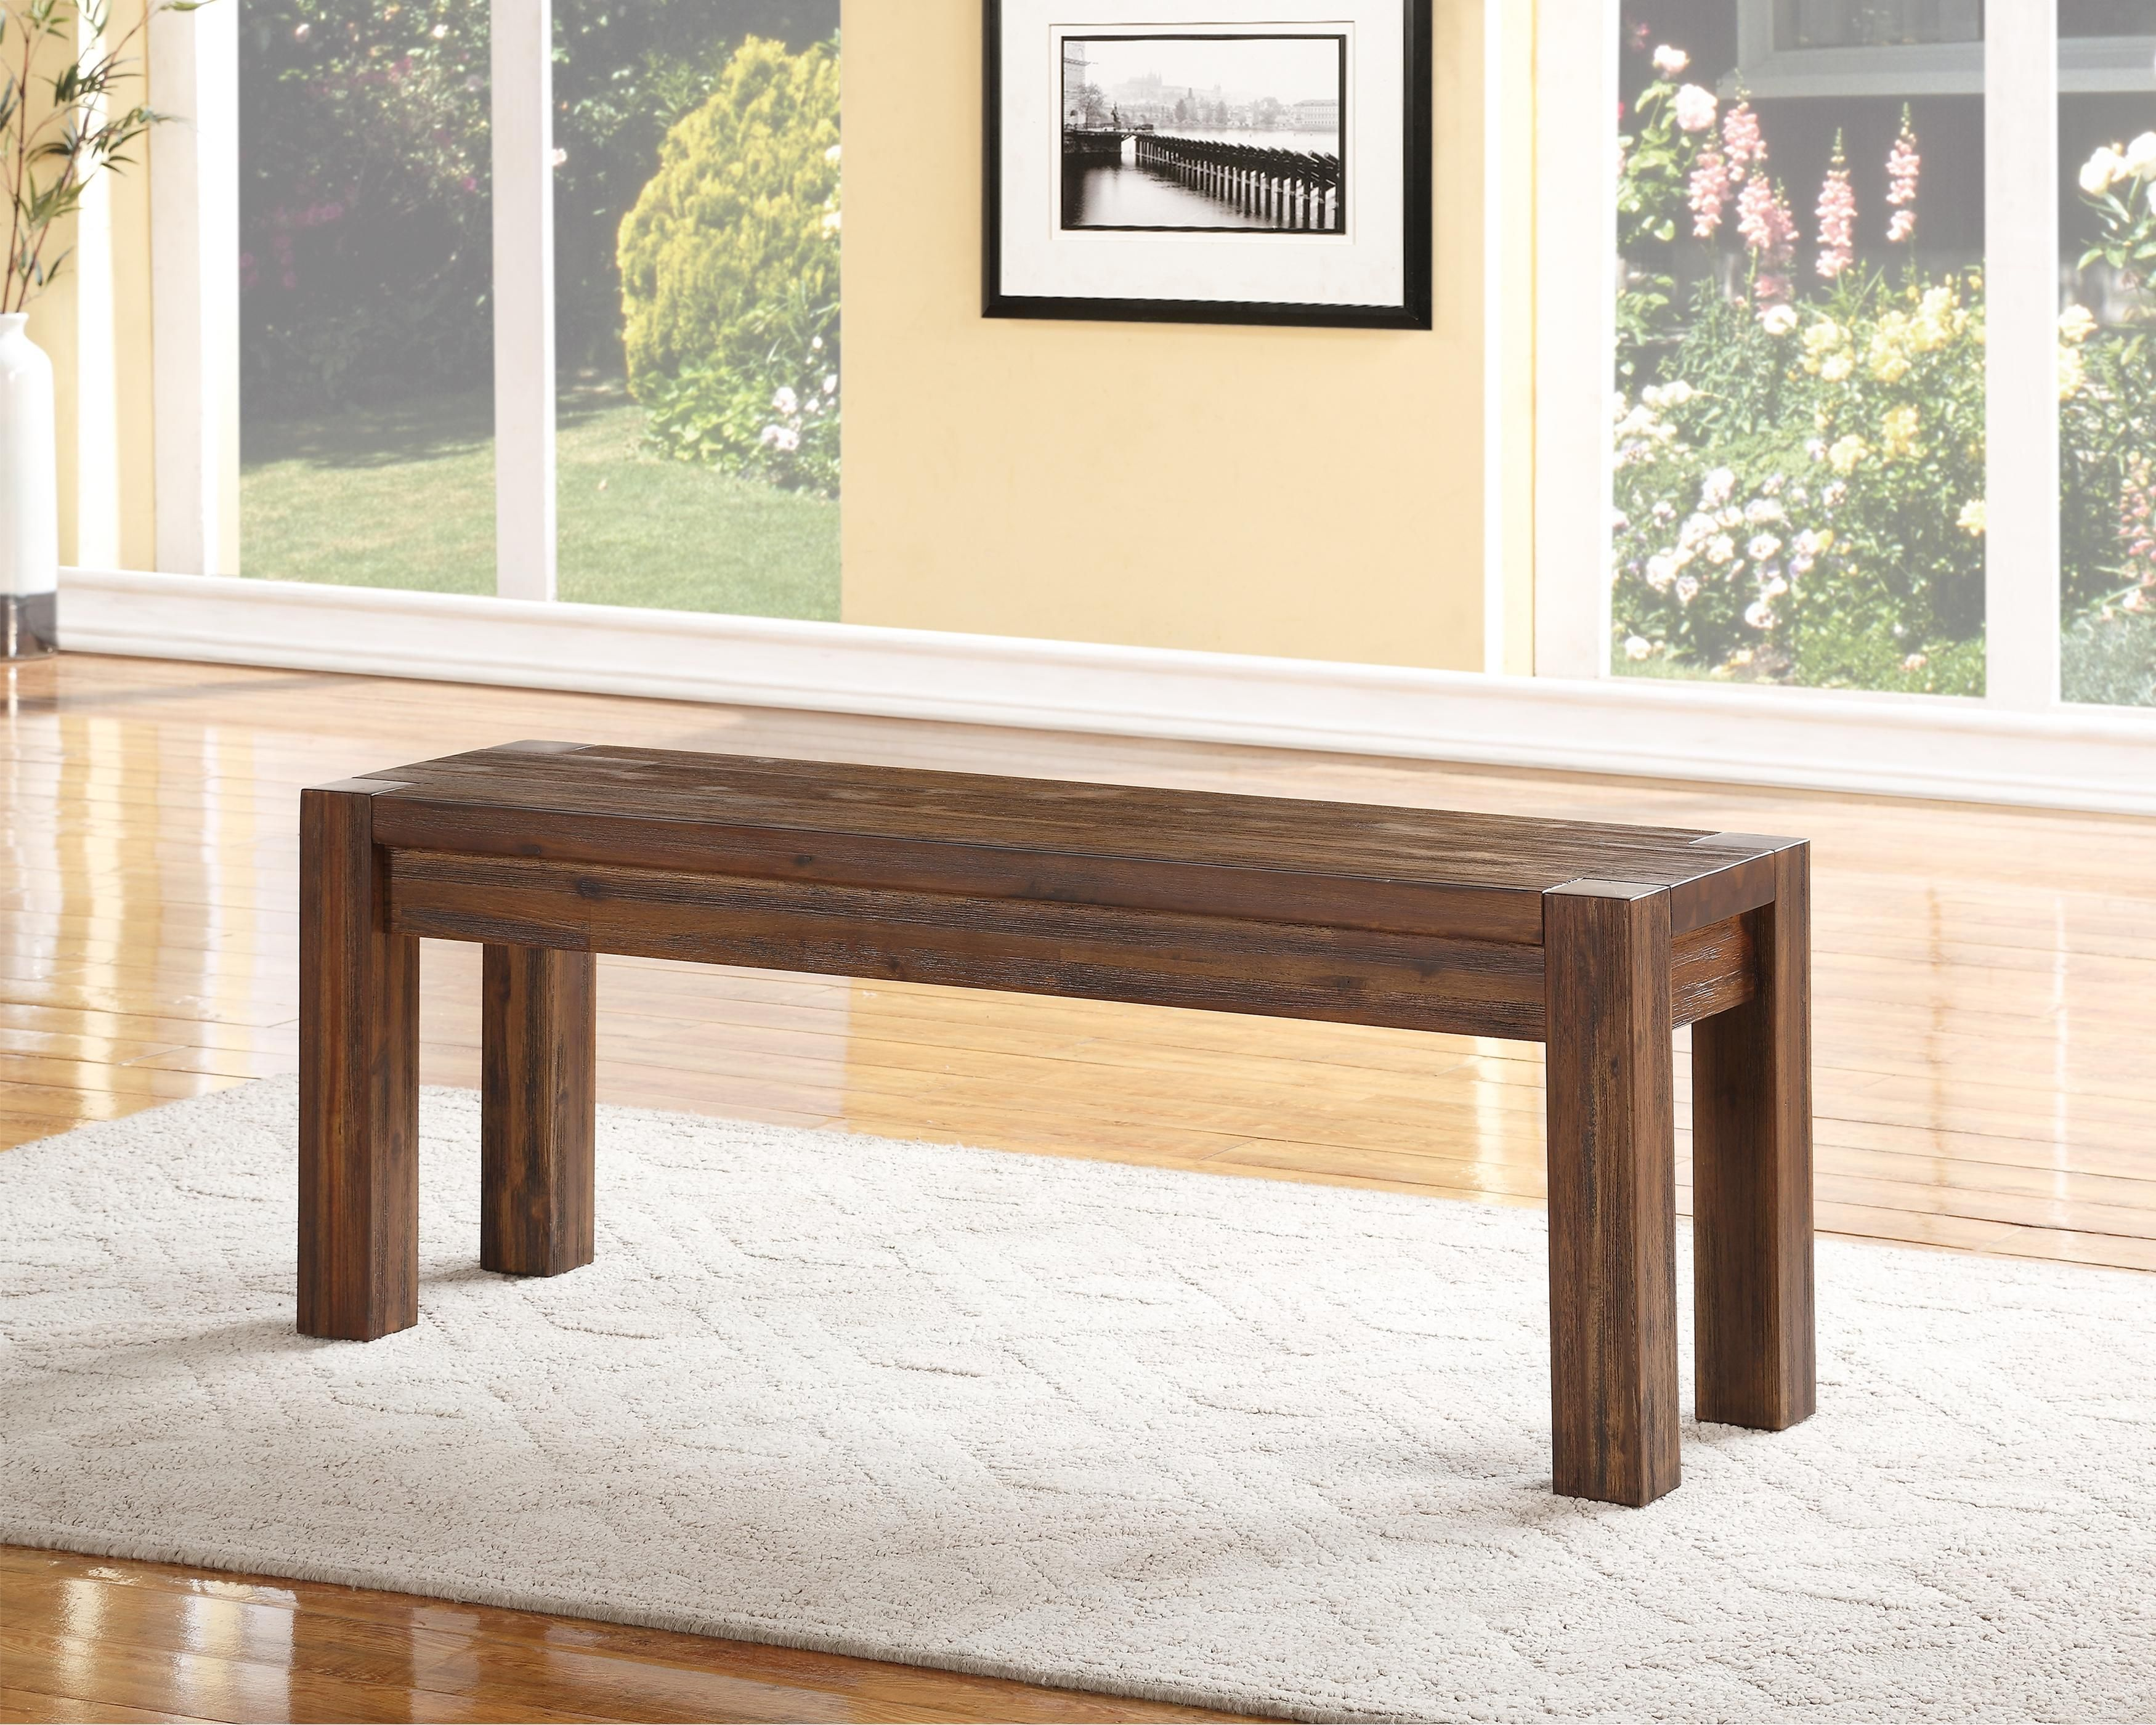 Meadow Dining Dining Bench By Modus International Wood Dining Bench Solid Wood Benches Wood Bench